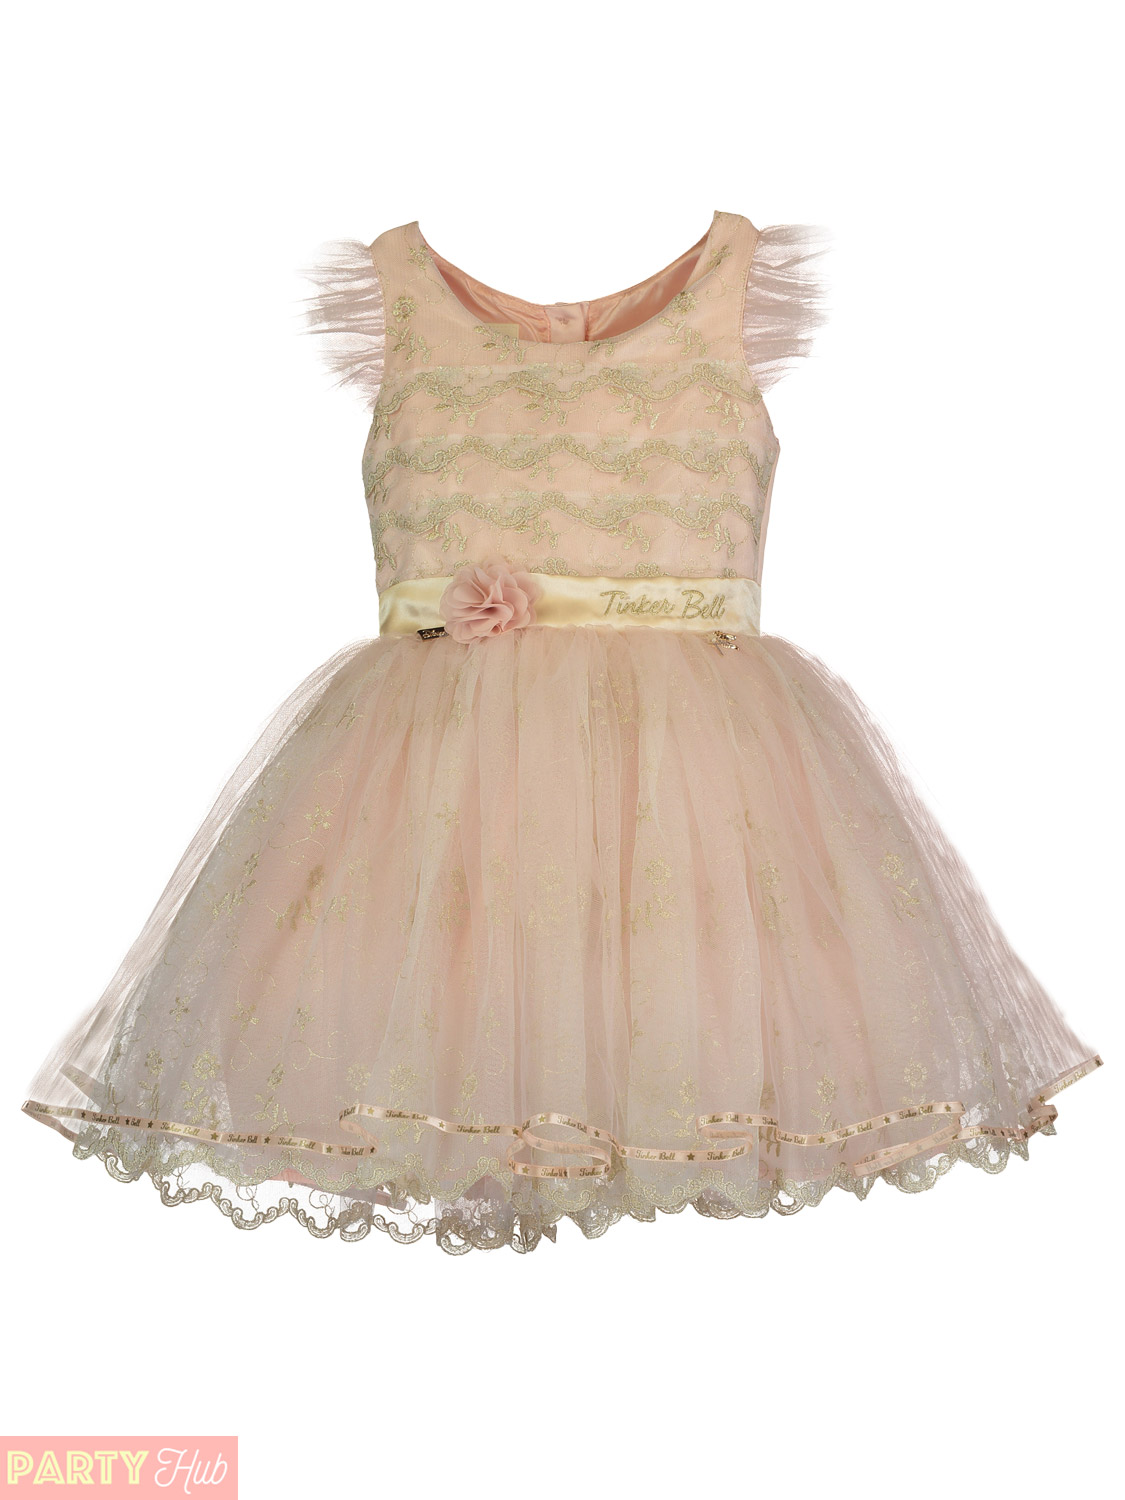 Girls Deluxe Embroidered Tinkerbell Dress Childs Travis Peter Pan Disney Outfit